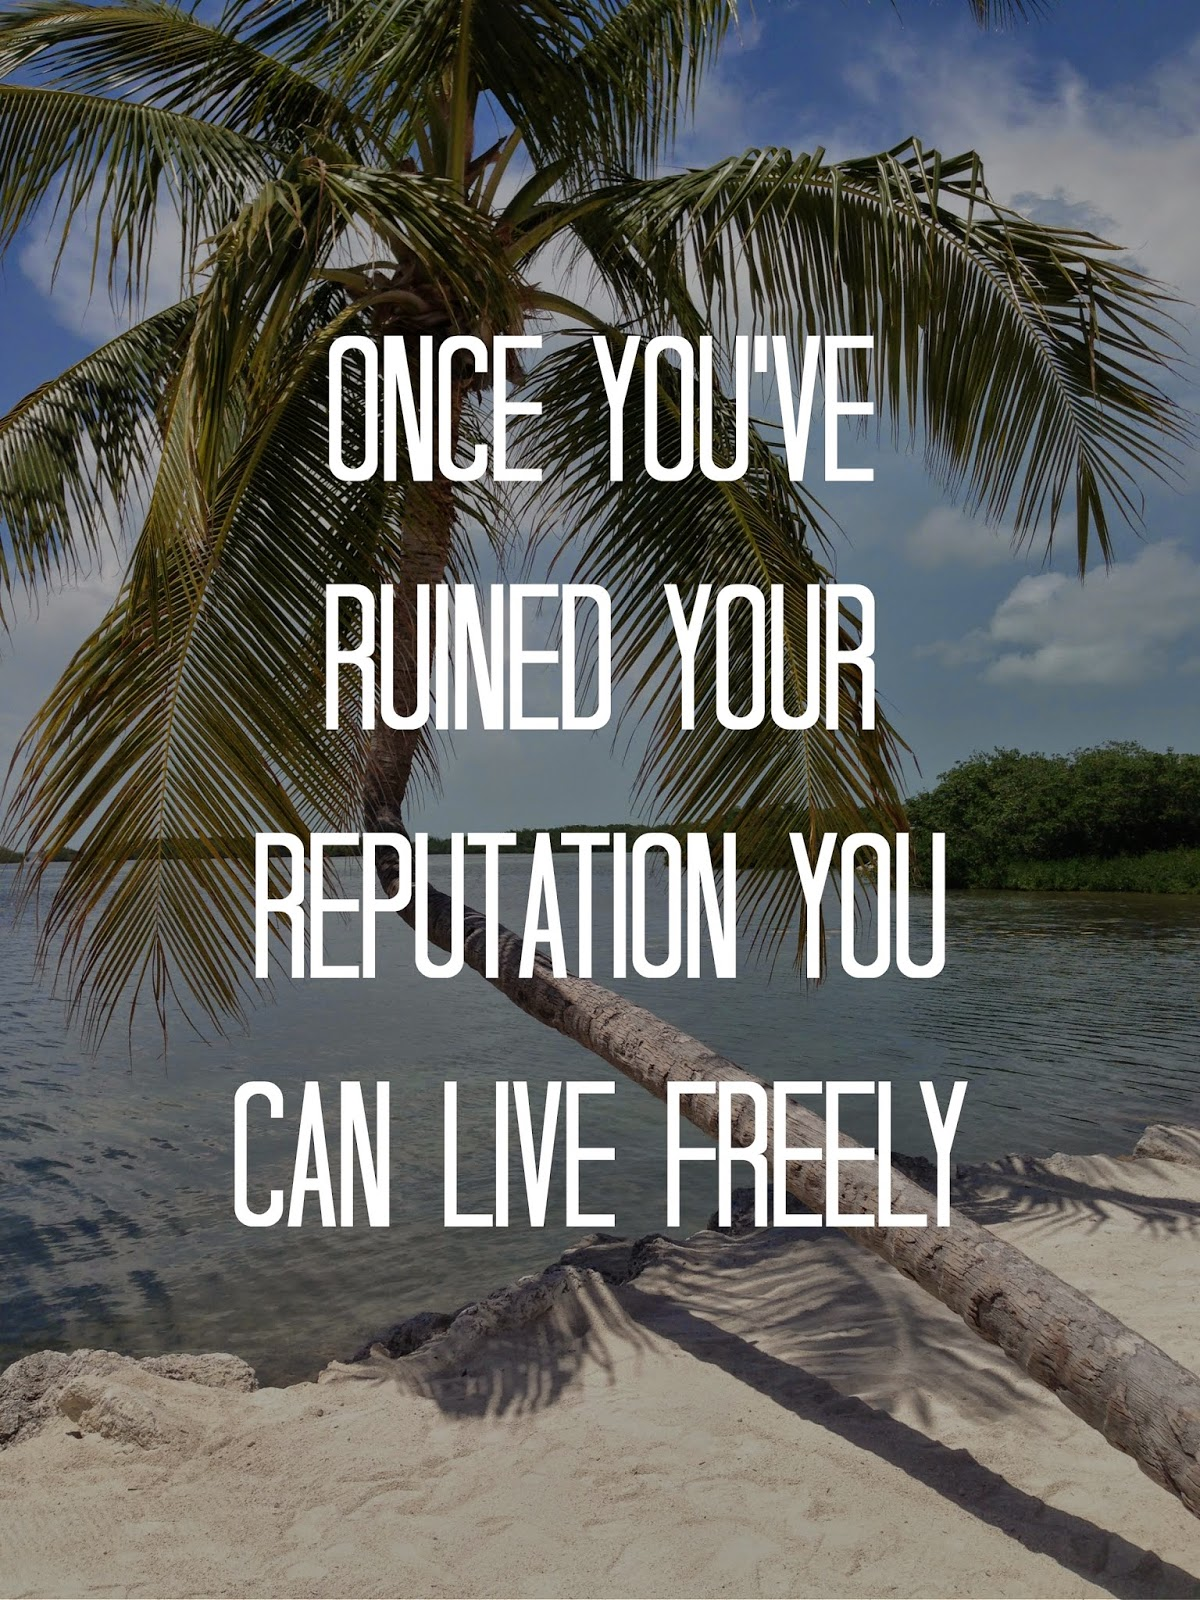 Quote - Florida Keys | The Twisted Horn